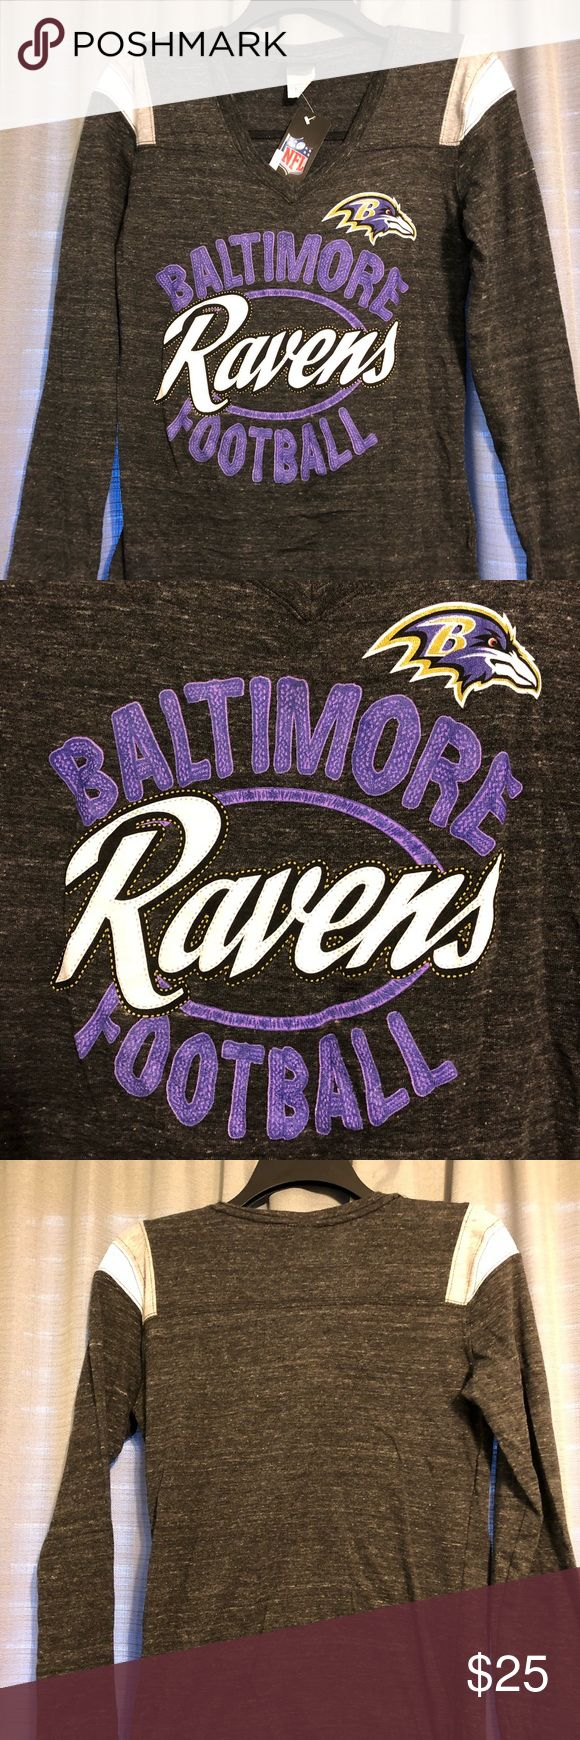 NWT Baltimore Ravens long sleeve shirt Brand new Baltimore Ravens football long sleeve T-shirt. Originally purchased at Macy's department store from the NFL team shop. Tags still attached. Perfect for cheering on the ravens in chilly fall weather! Macy's Tops Tees - Long Sleeve